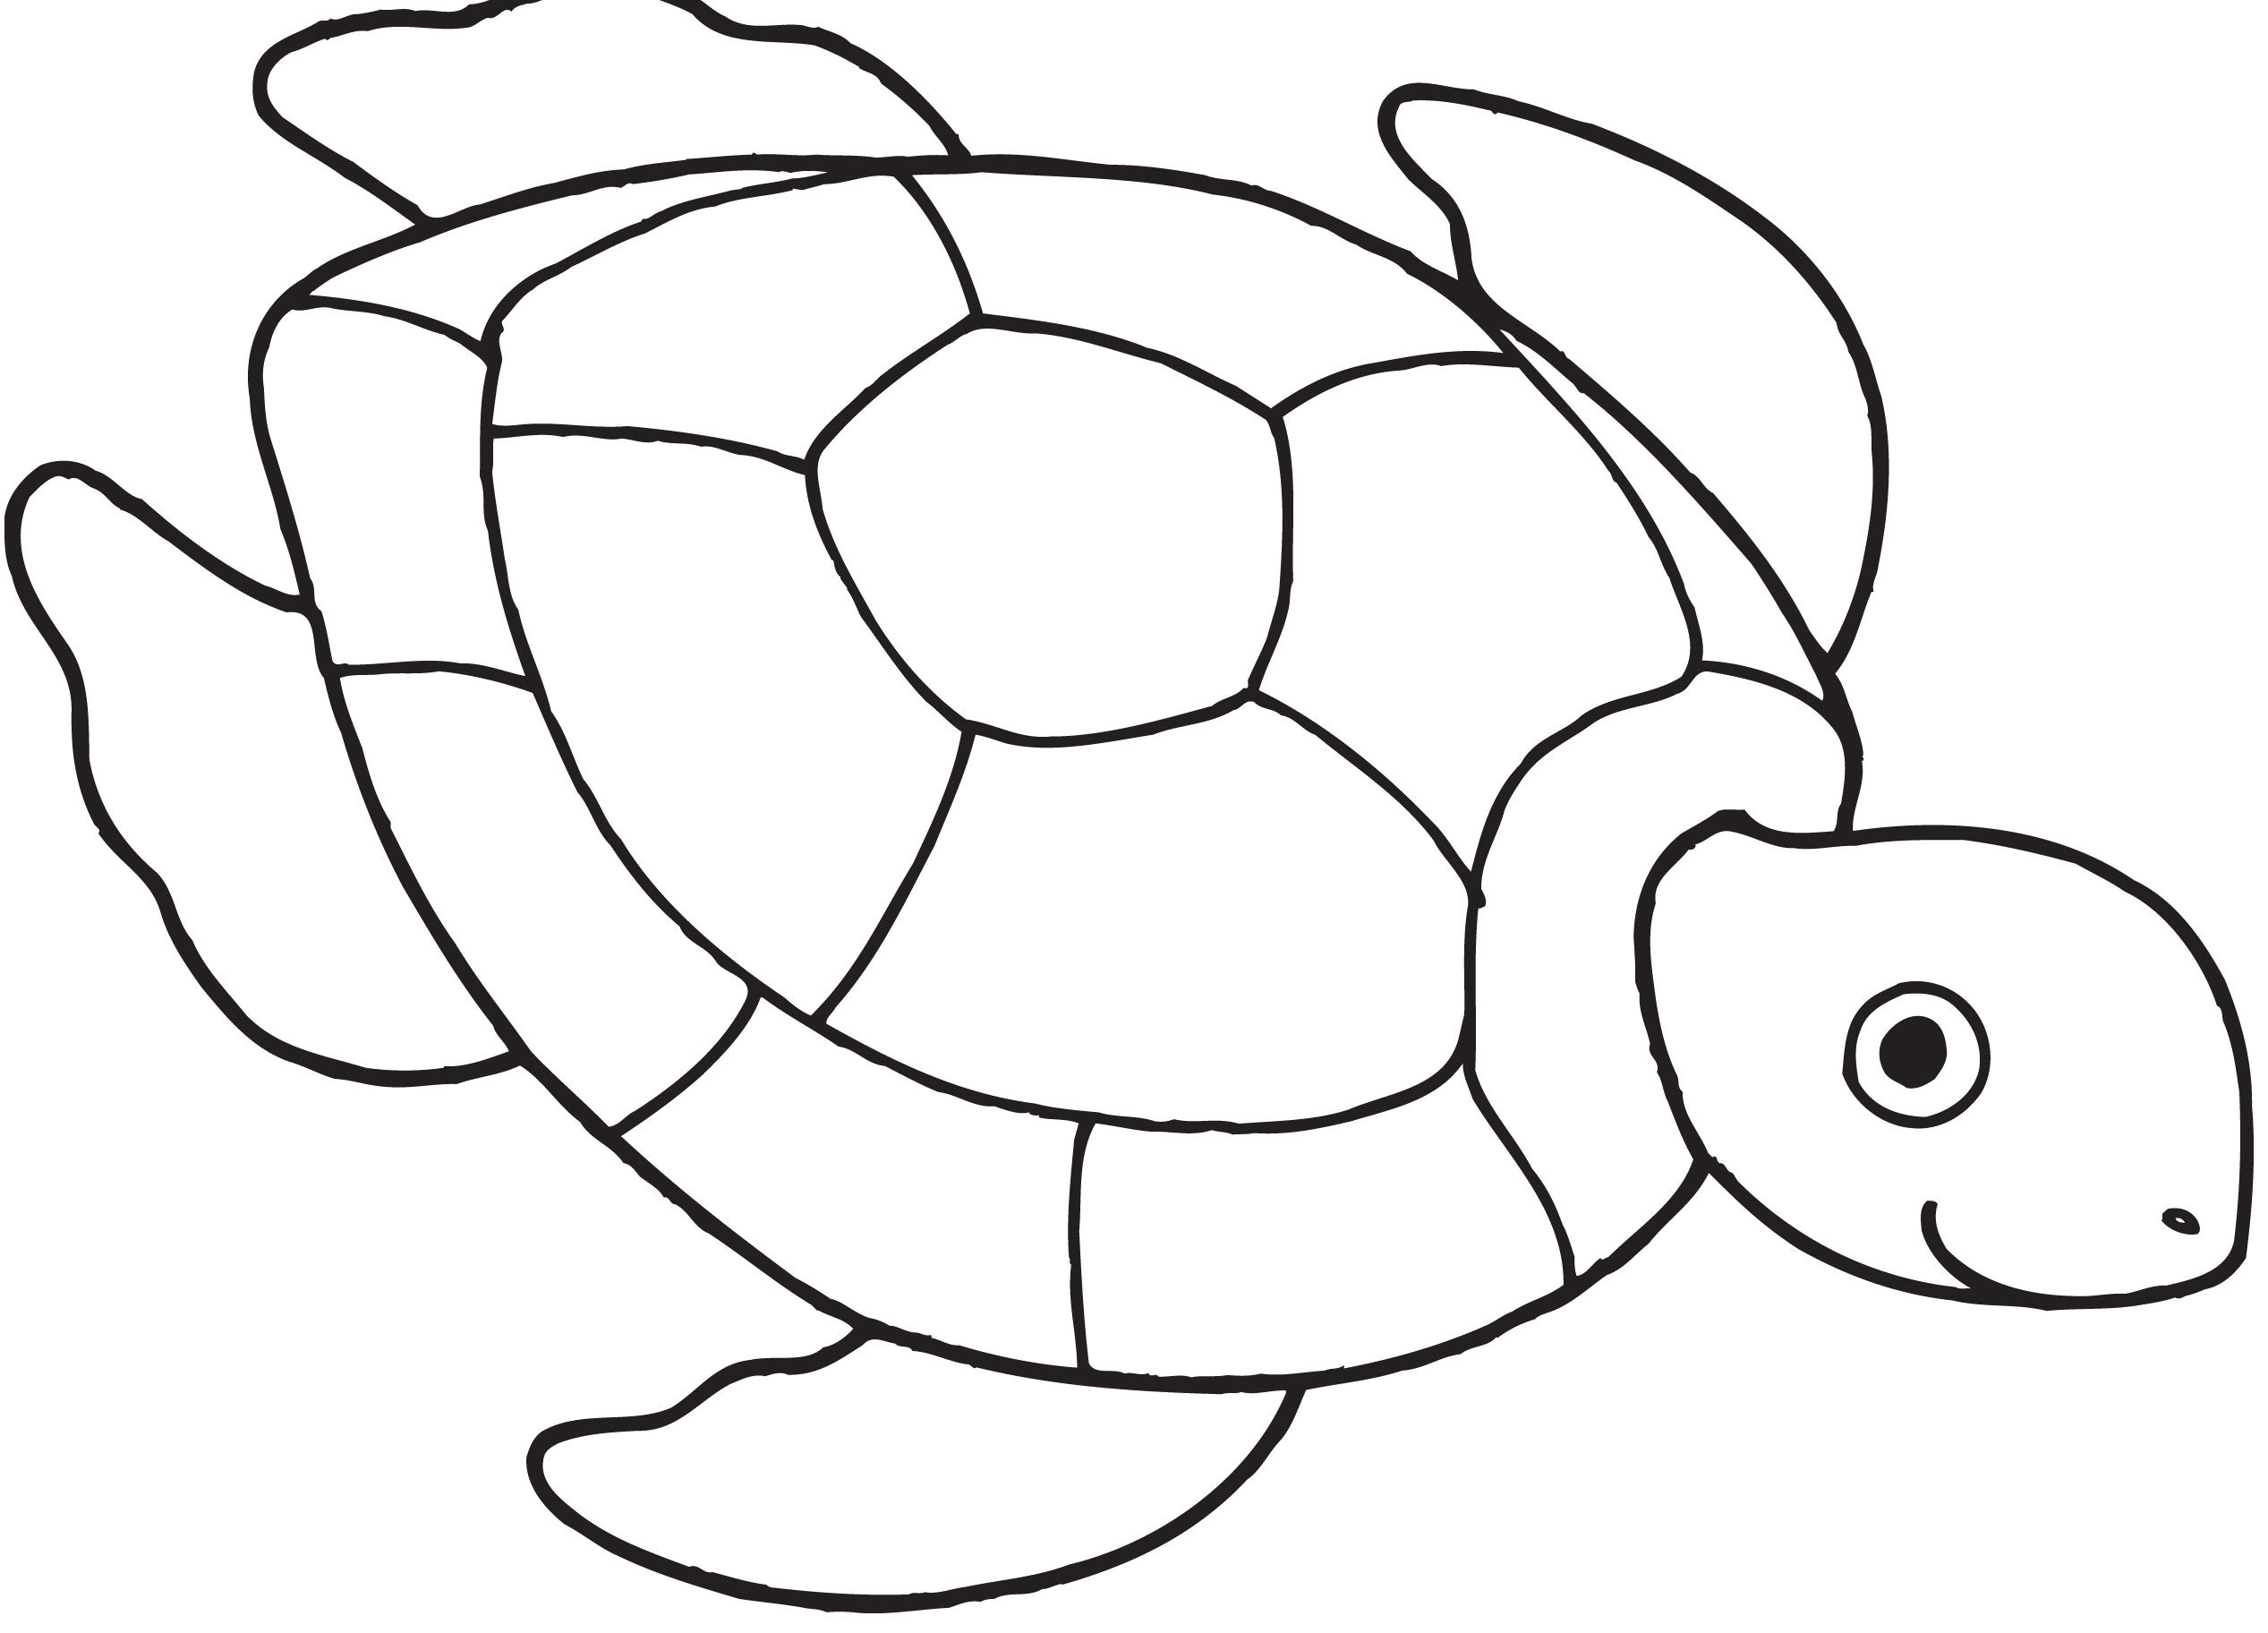 Free Sea Turtle Coloring Pages With Sea Page Tweeting Cities Free Turtle Coloring Pages Turtle Drawing Sea Turtle Drawing